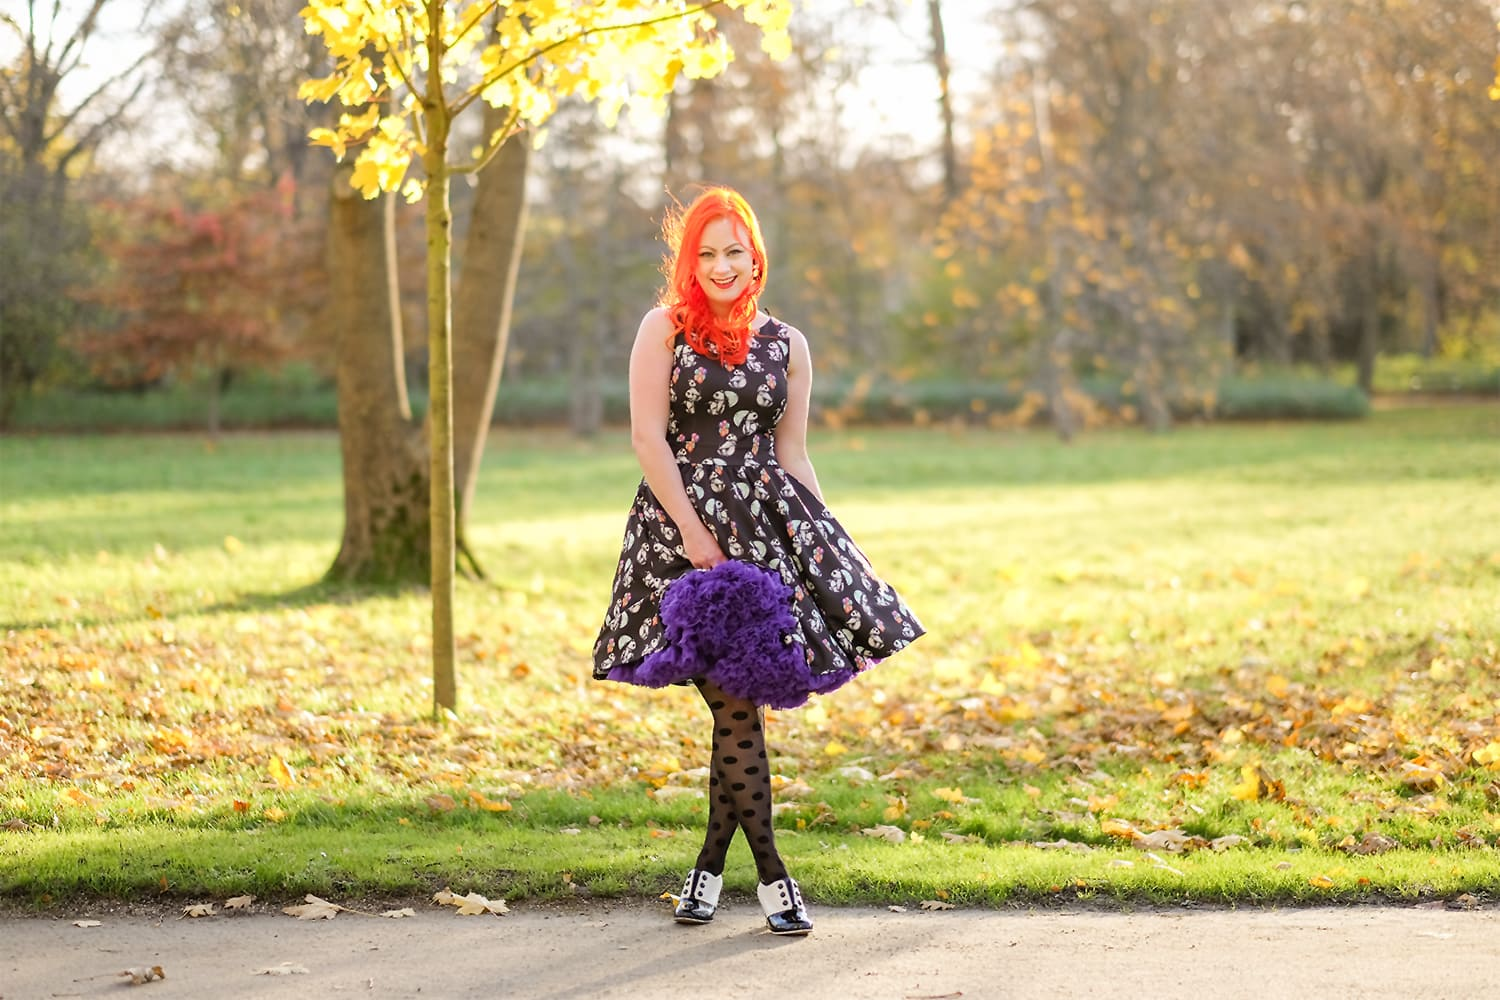 AlexiaDahl.com - Lady V London Panda Extravaganza dress and Doris Designs petticoat